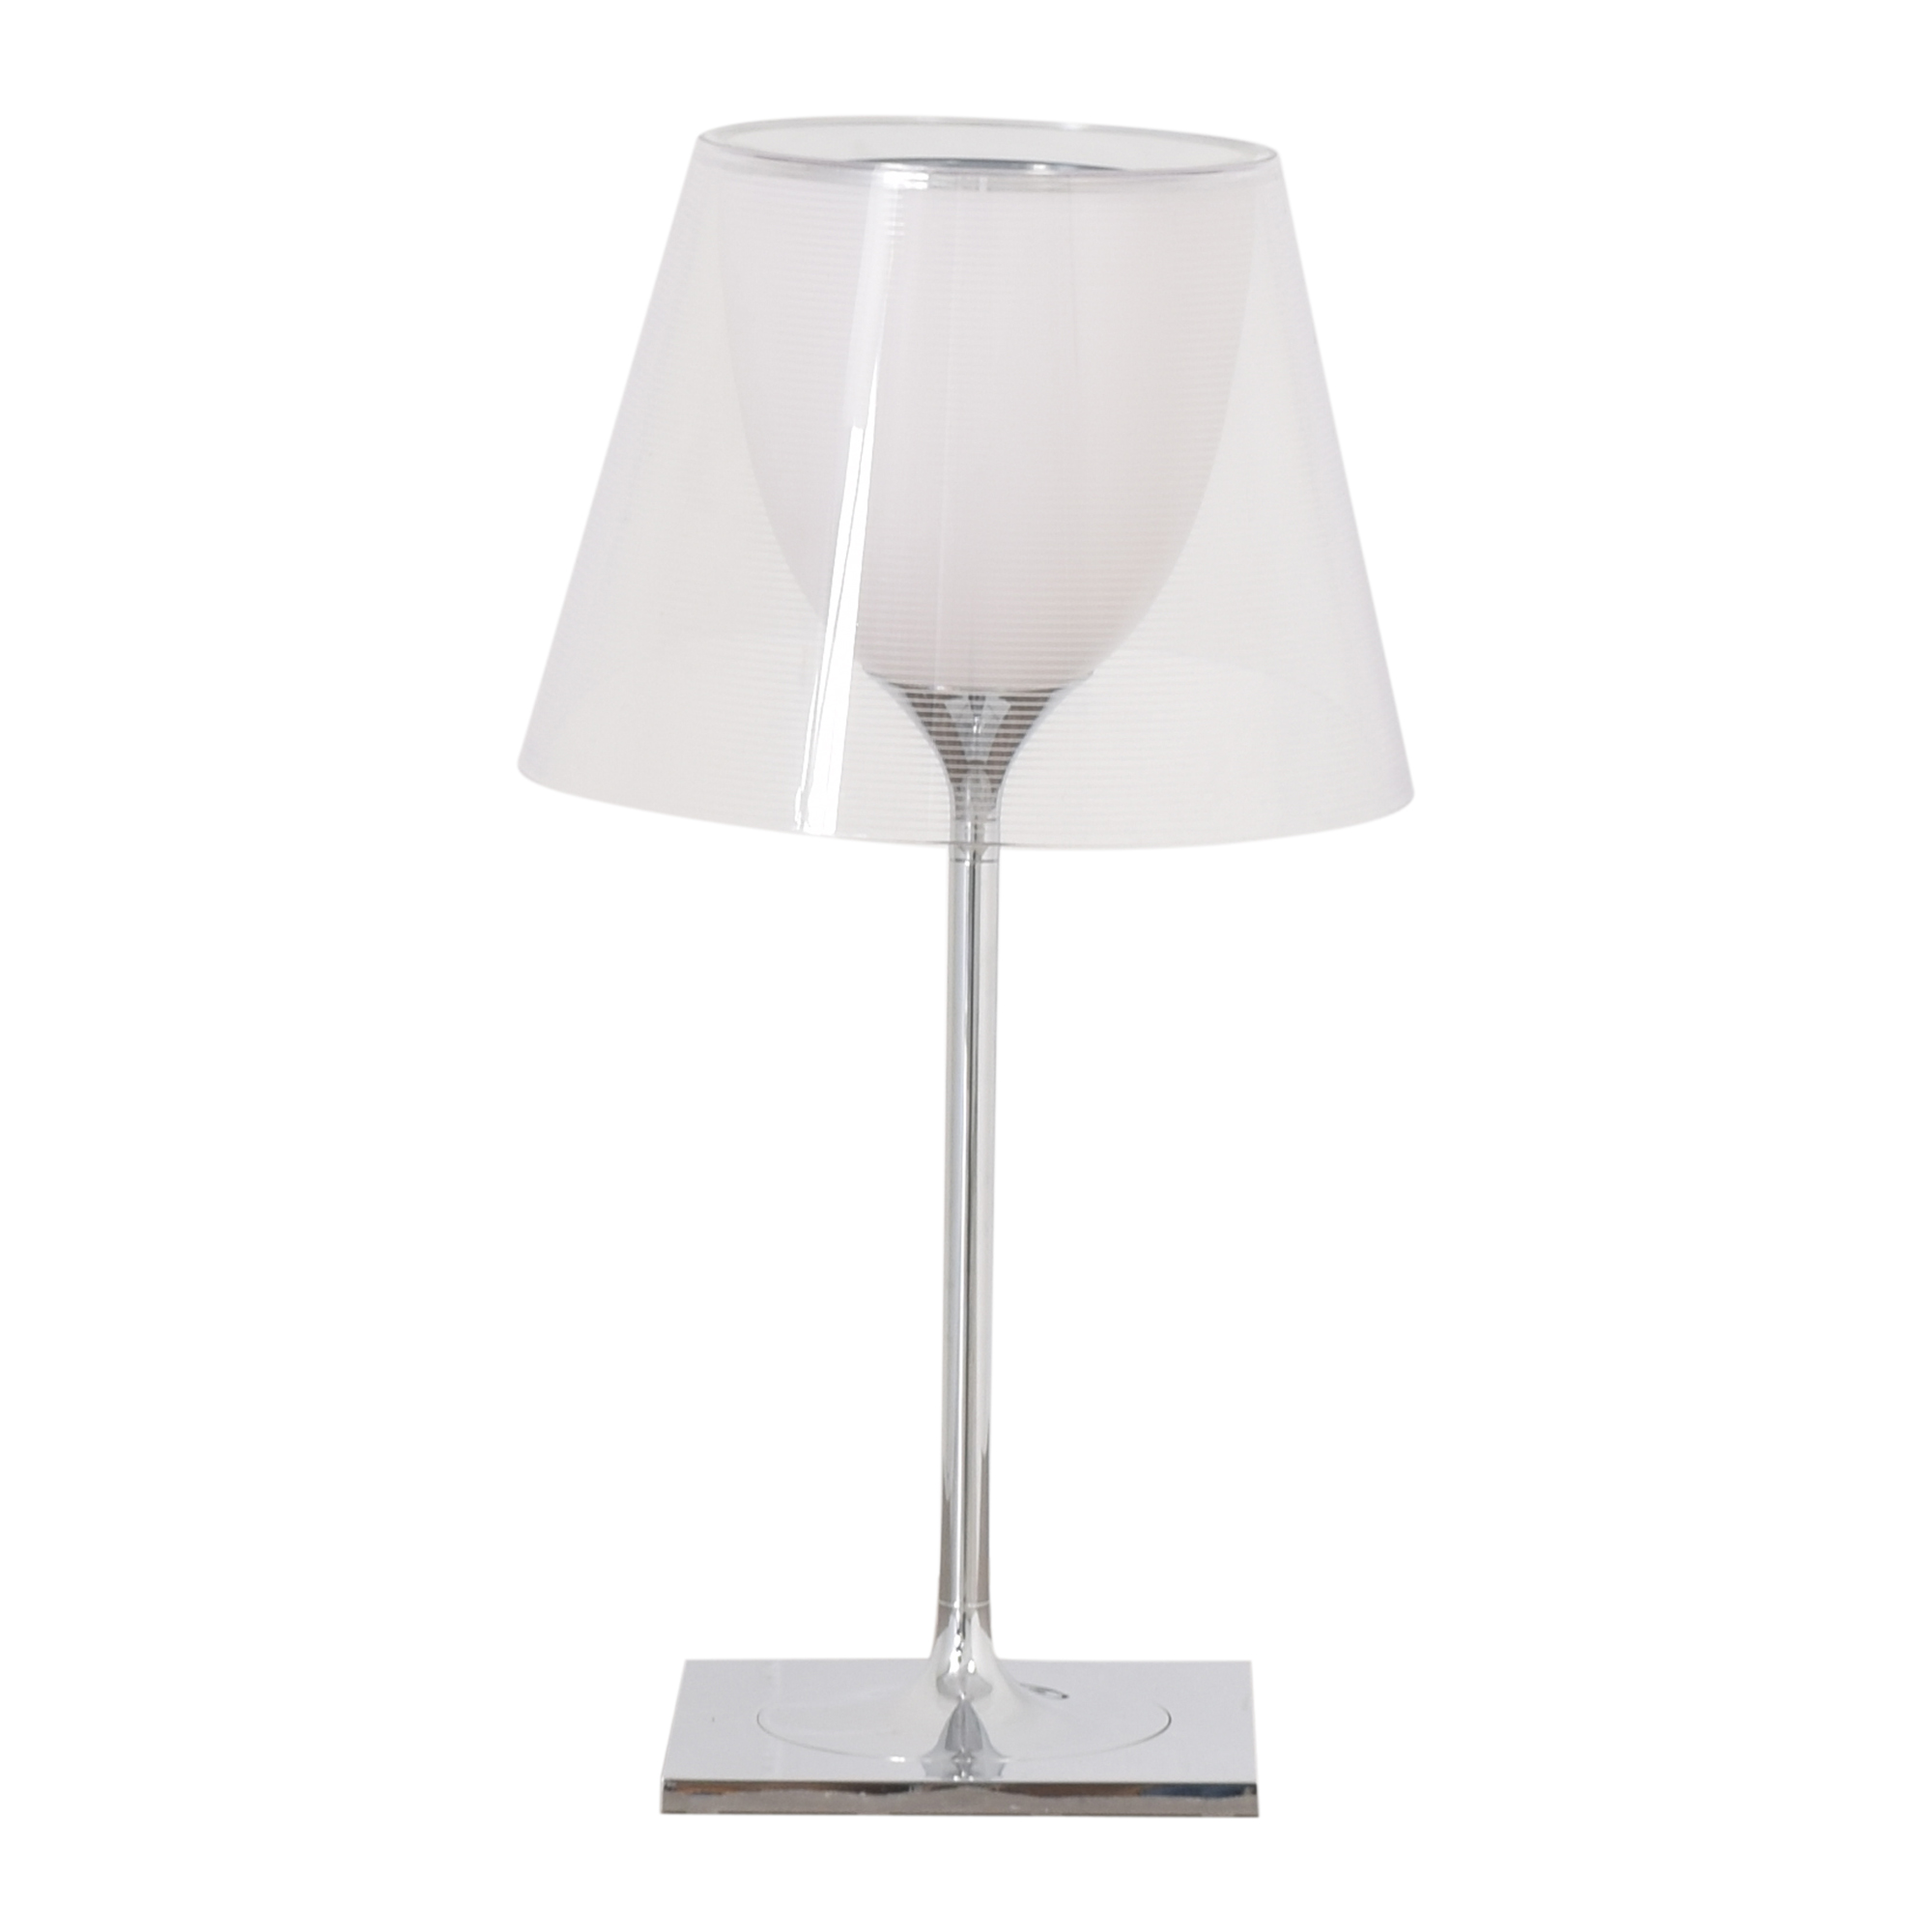 FLOS FLOS K Tribe T1 Table Lamp Decor